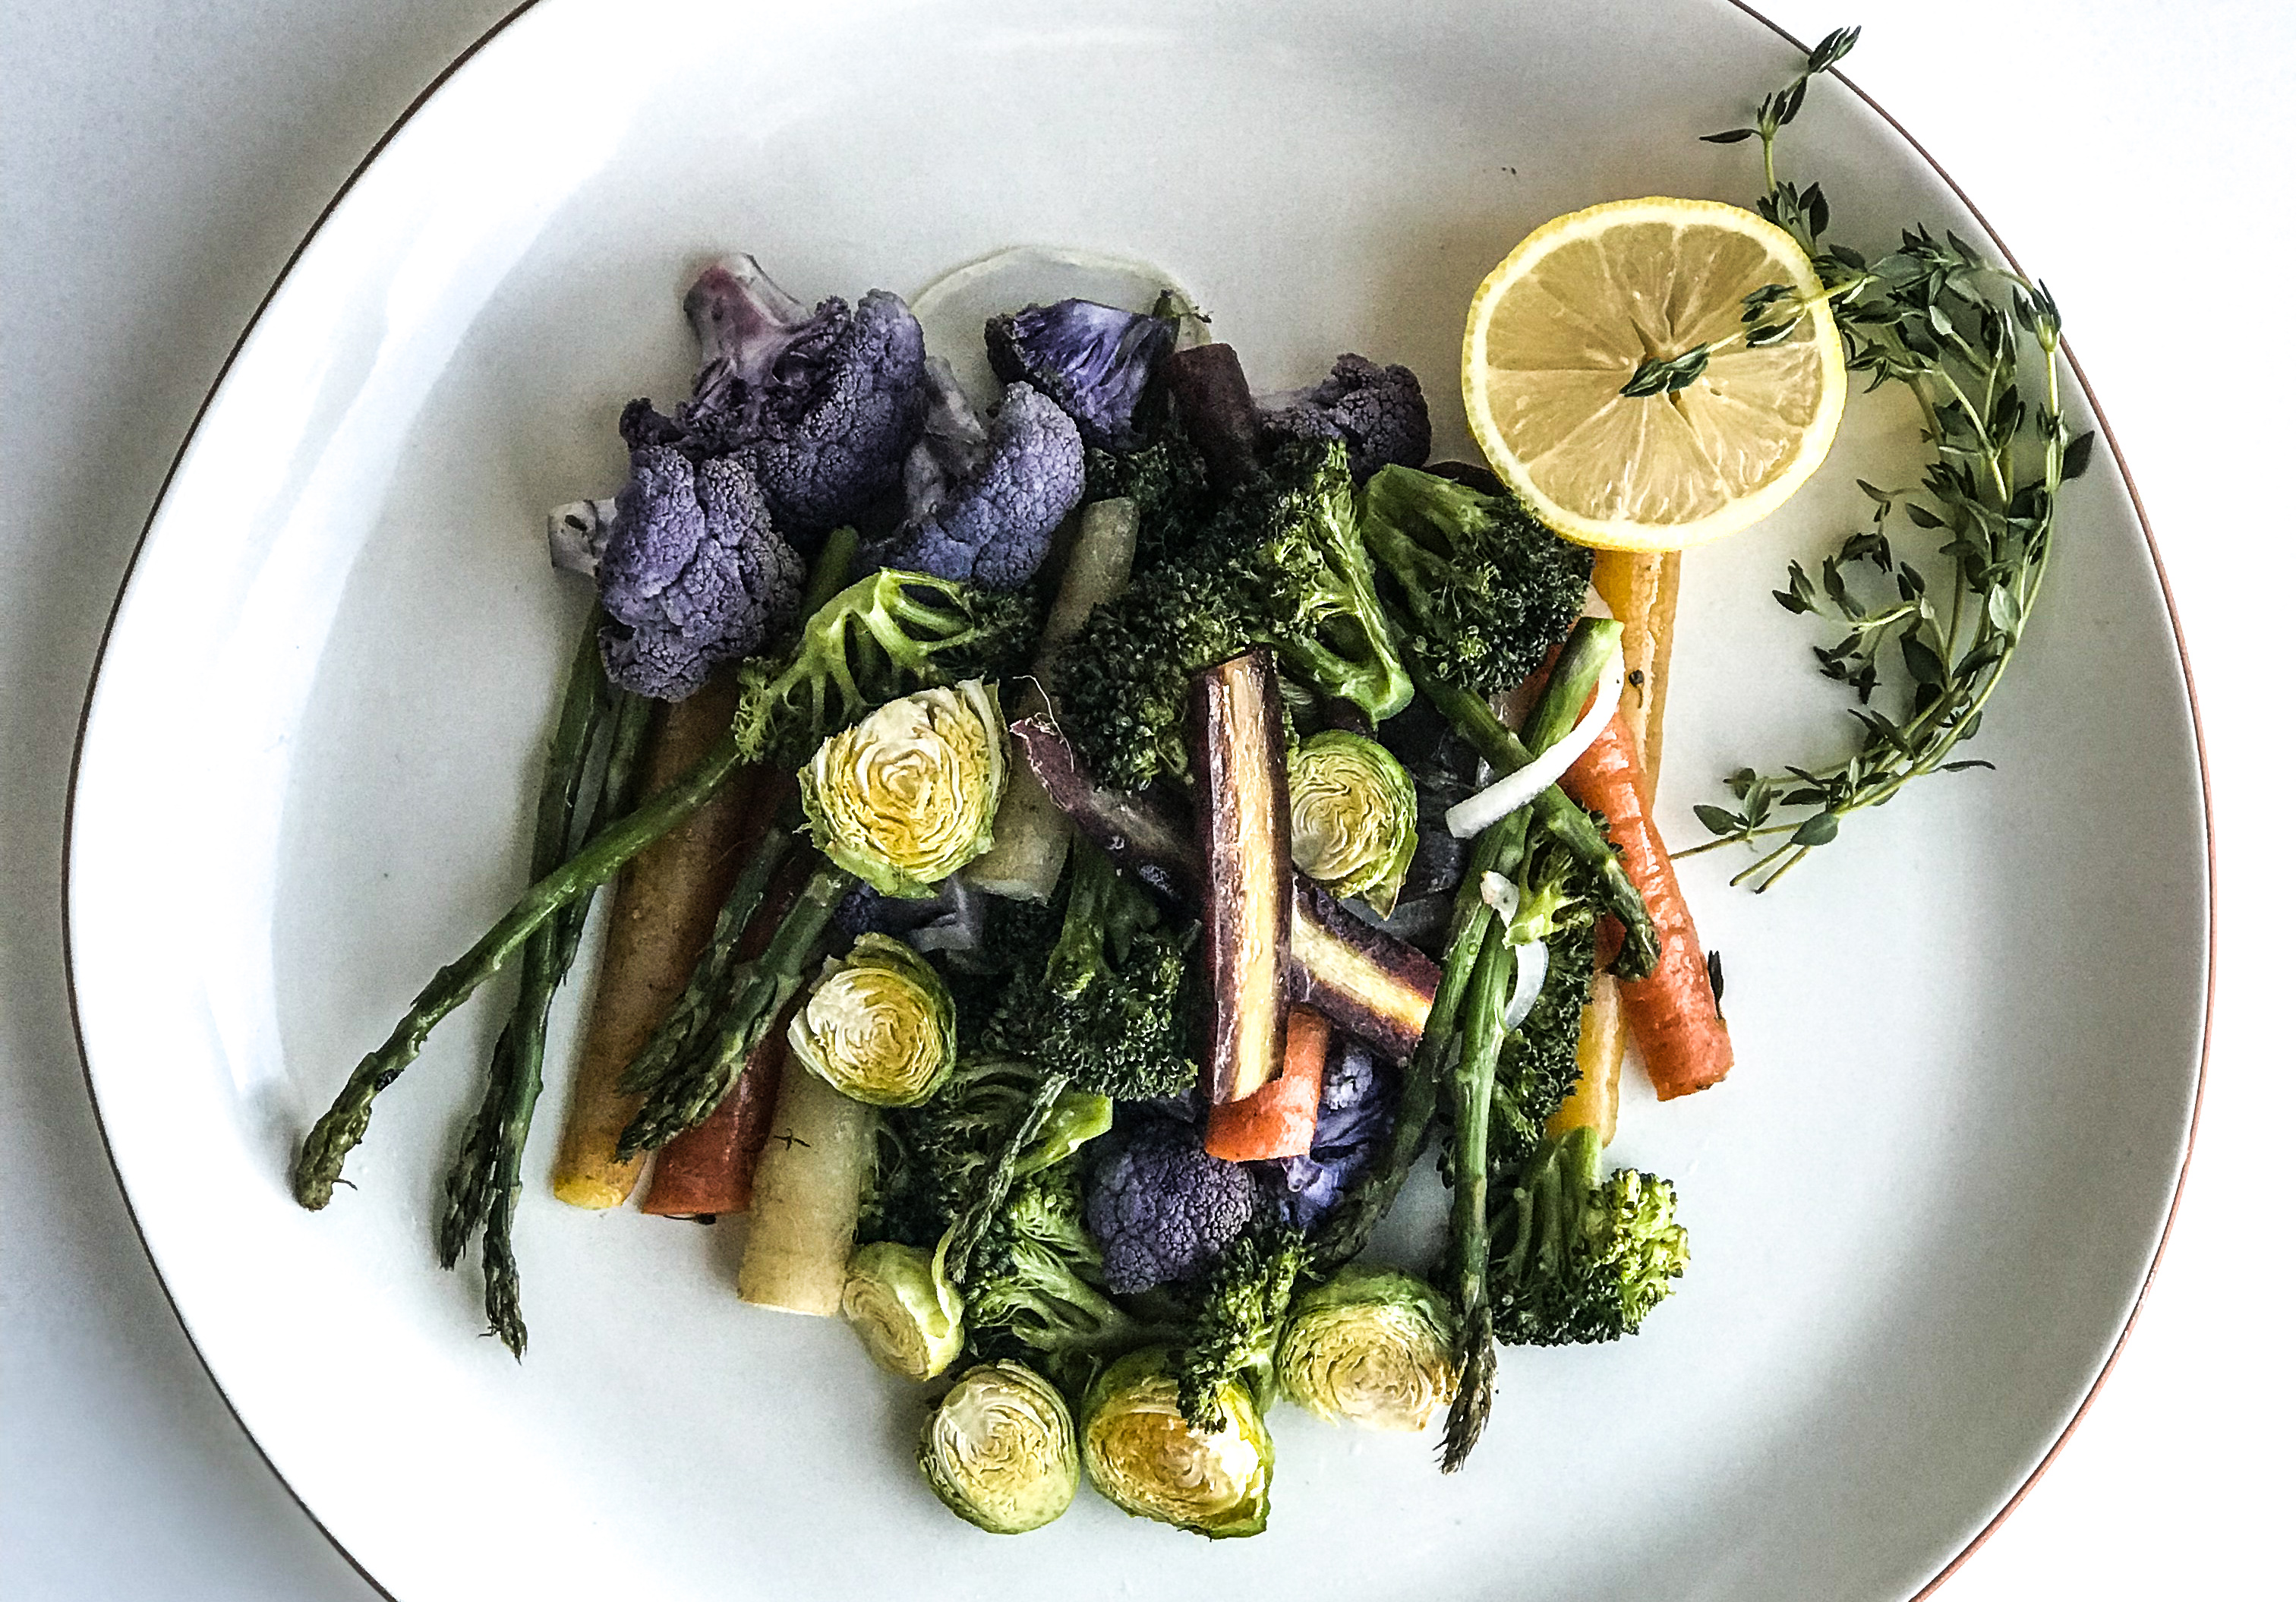 Sheet-Pan Roasted Vegetables